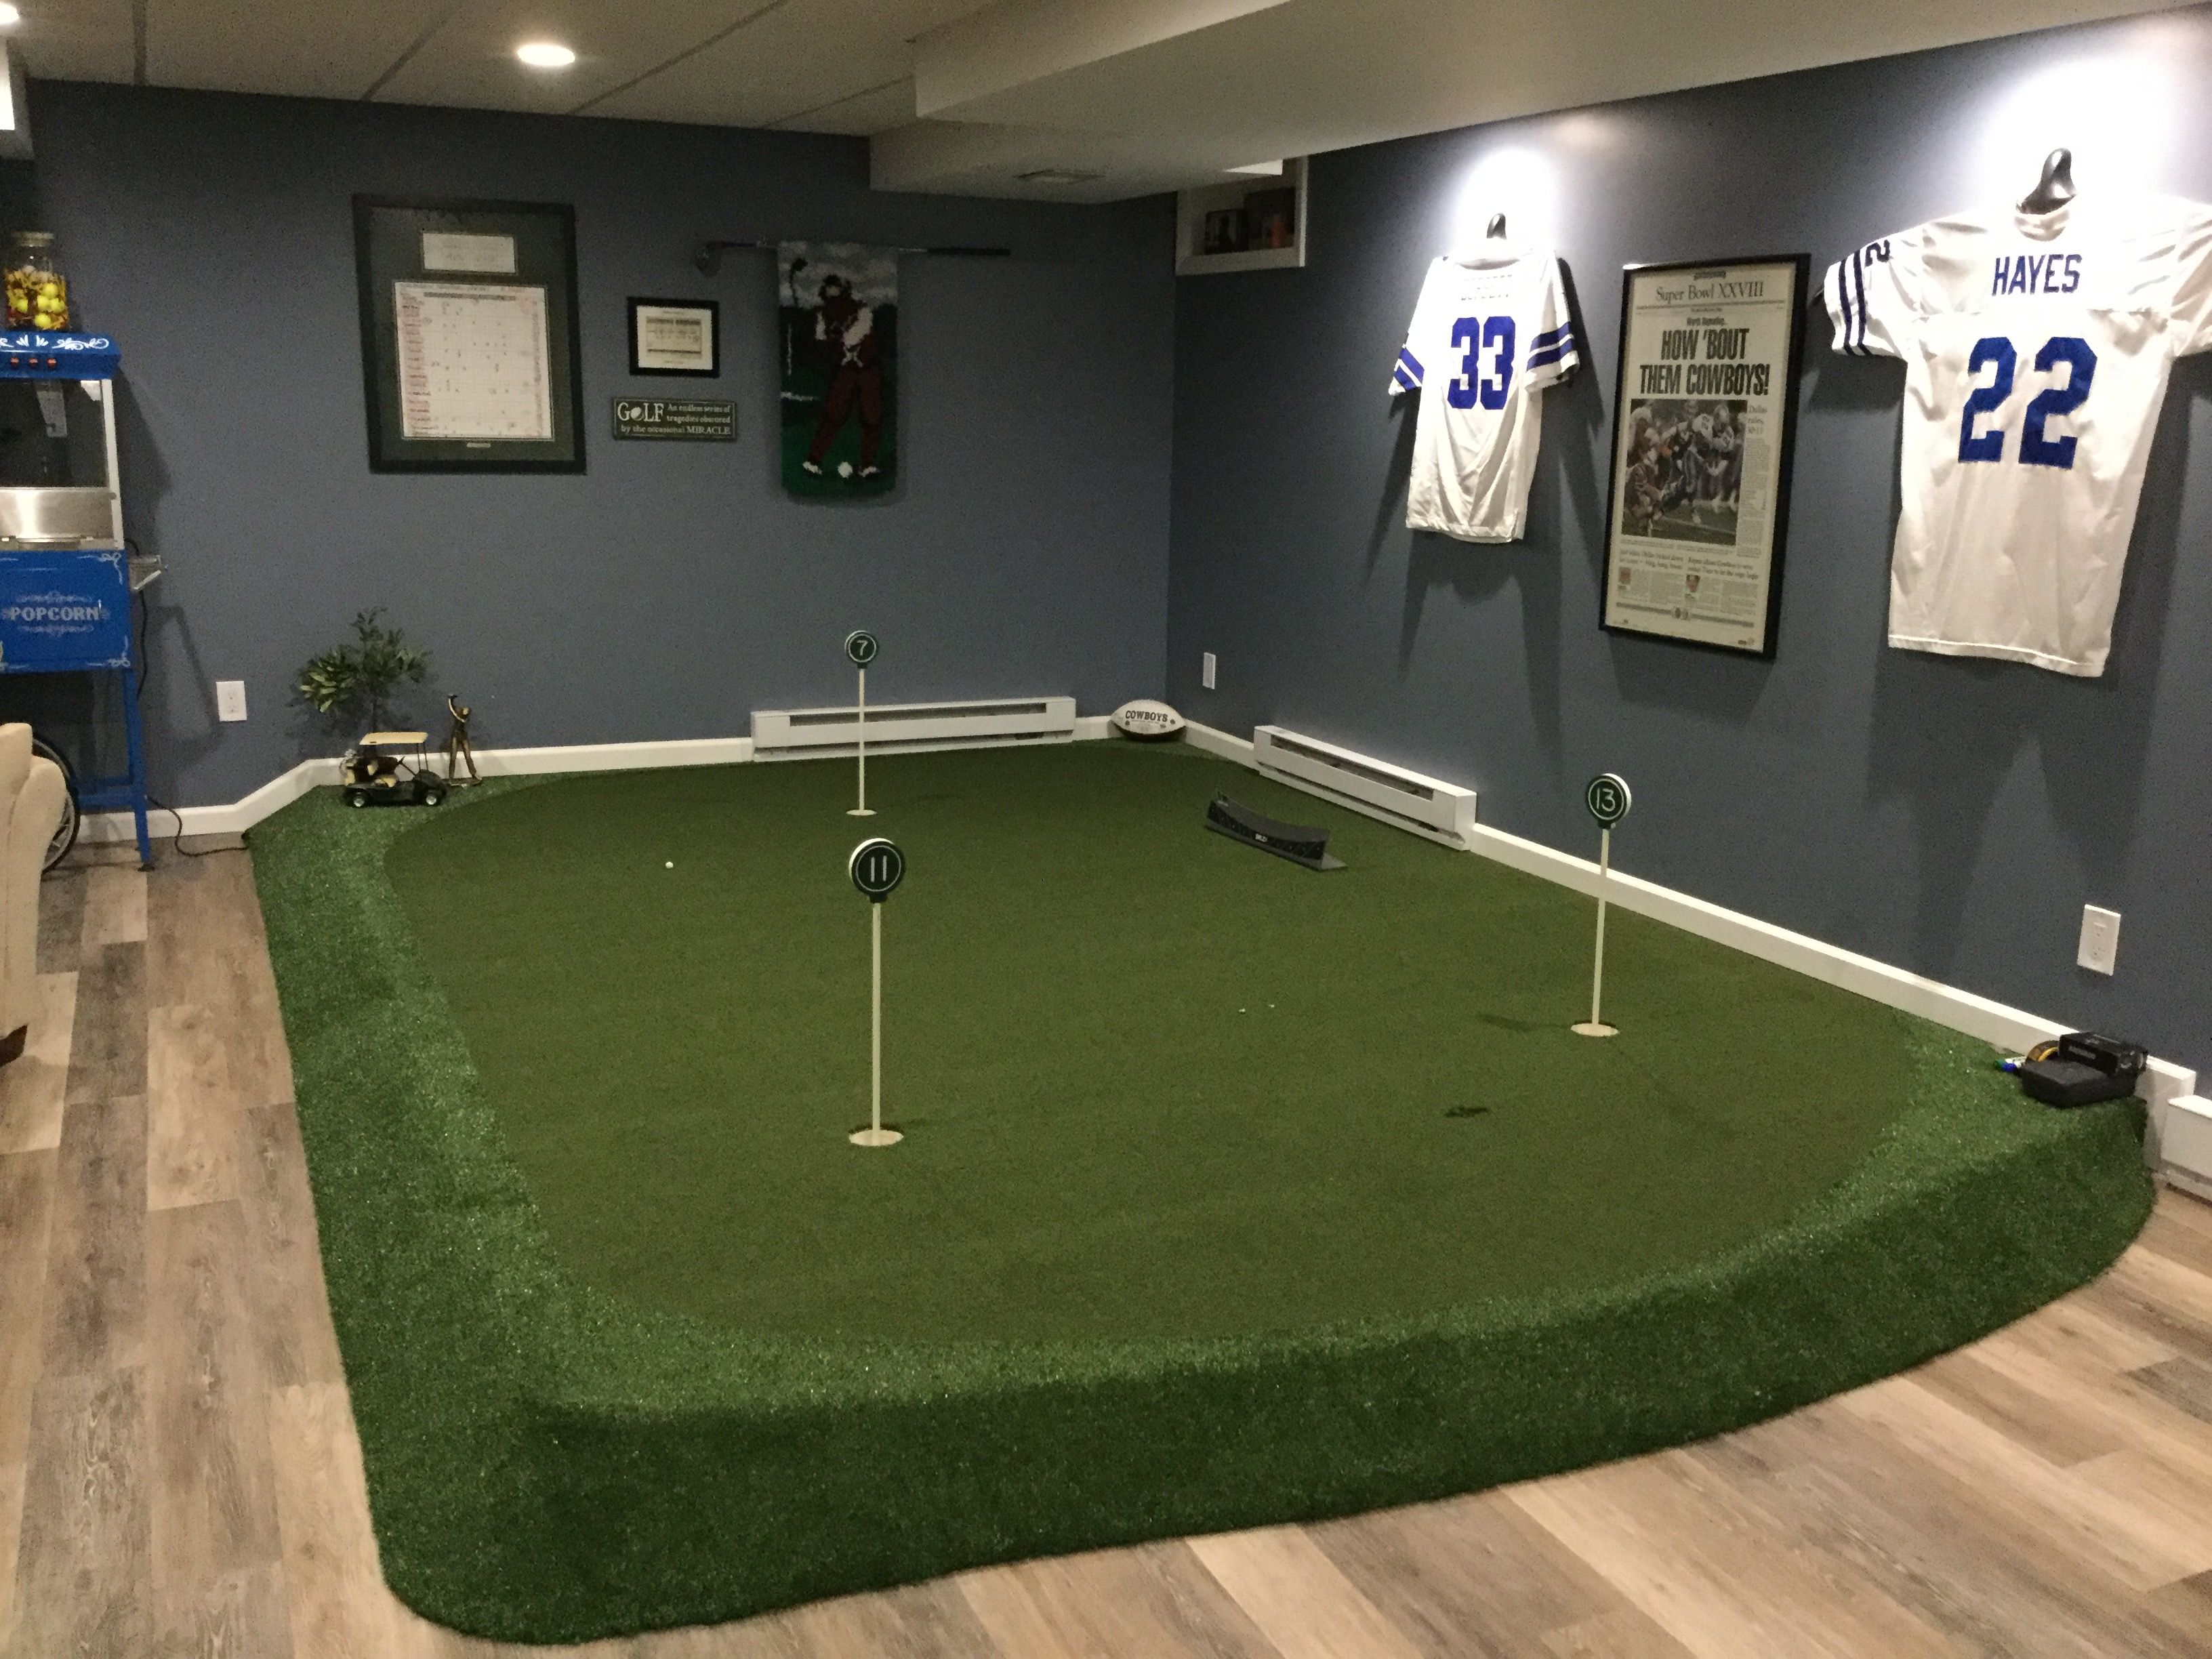 awesome rooms from man caves sports storage golf practice and